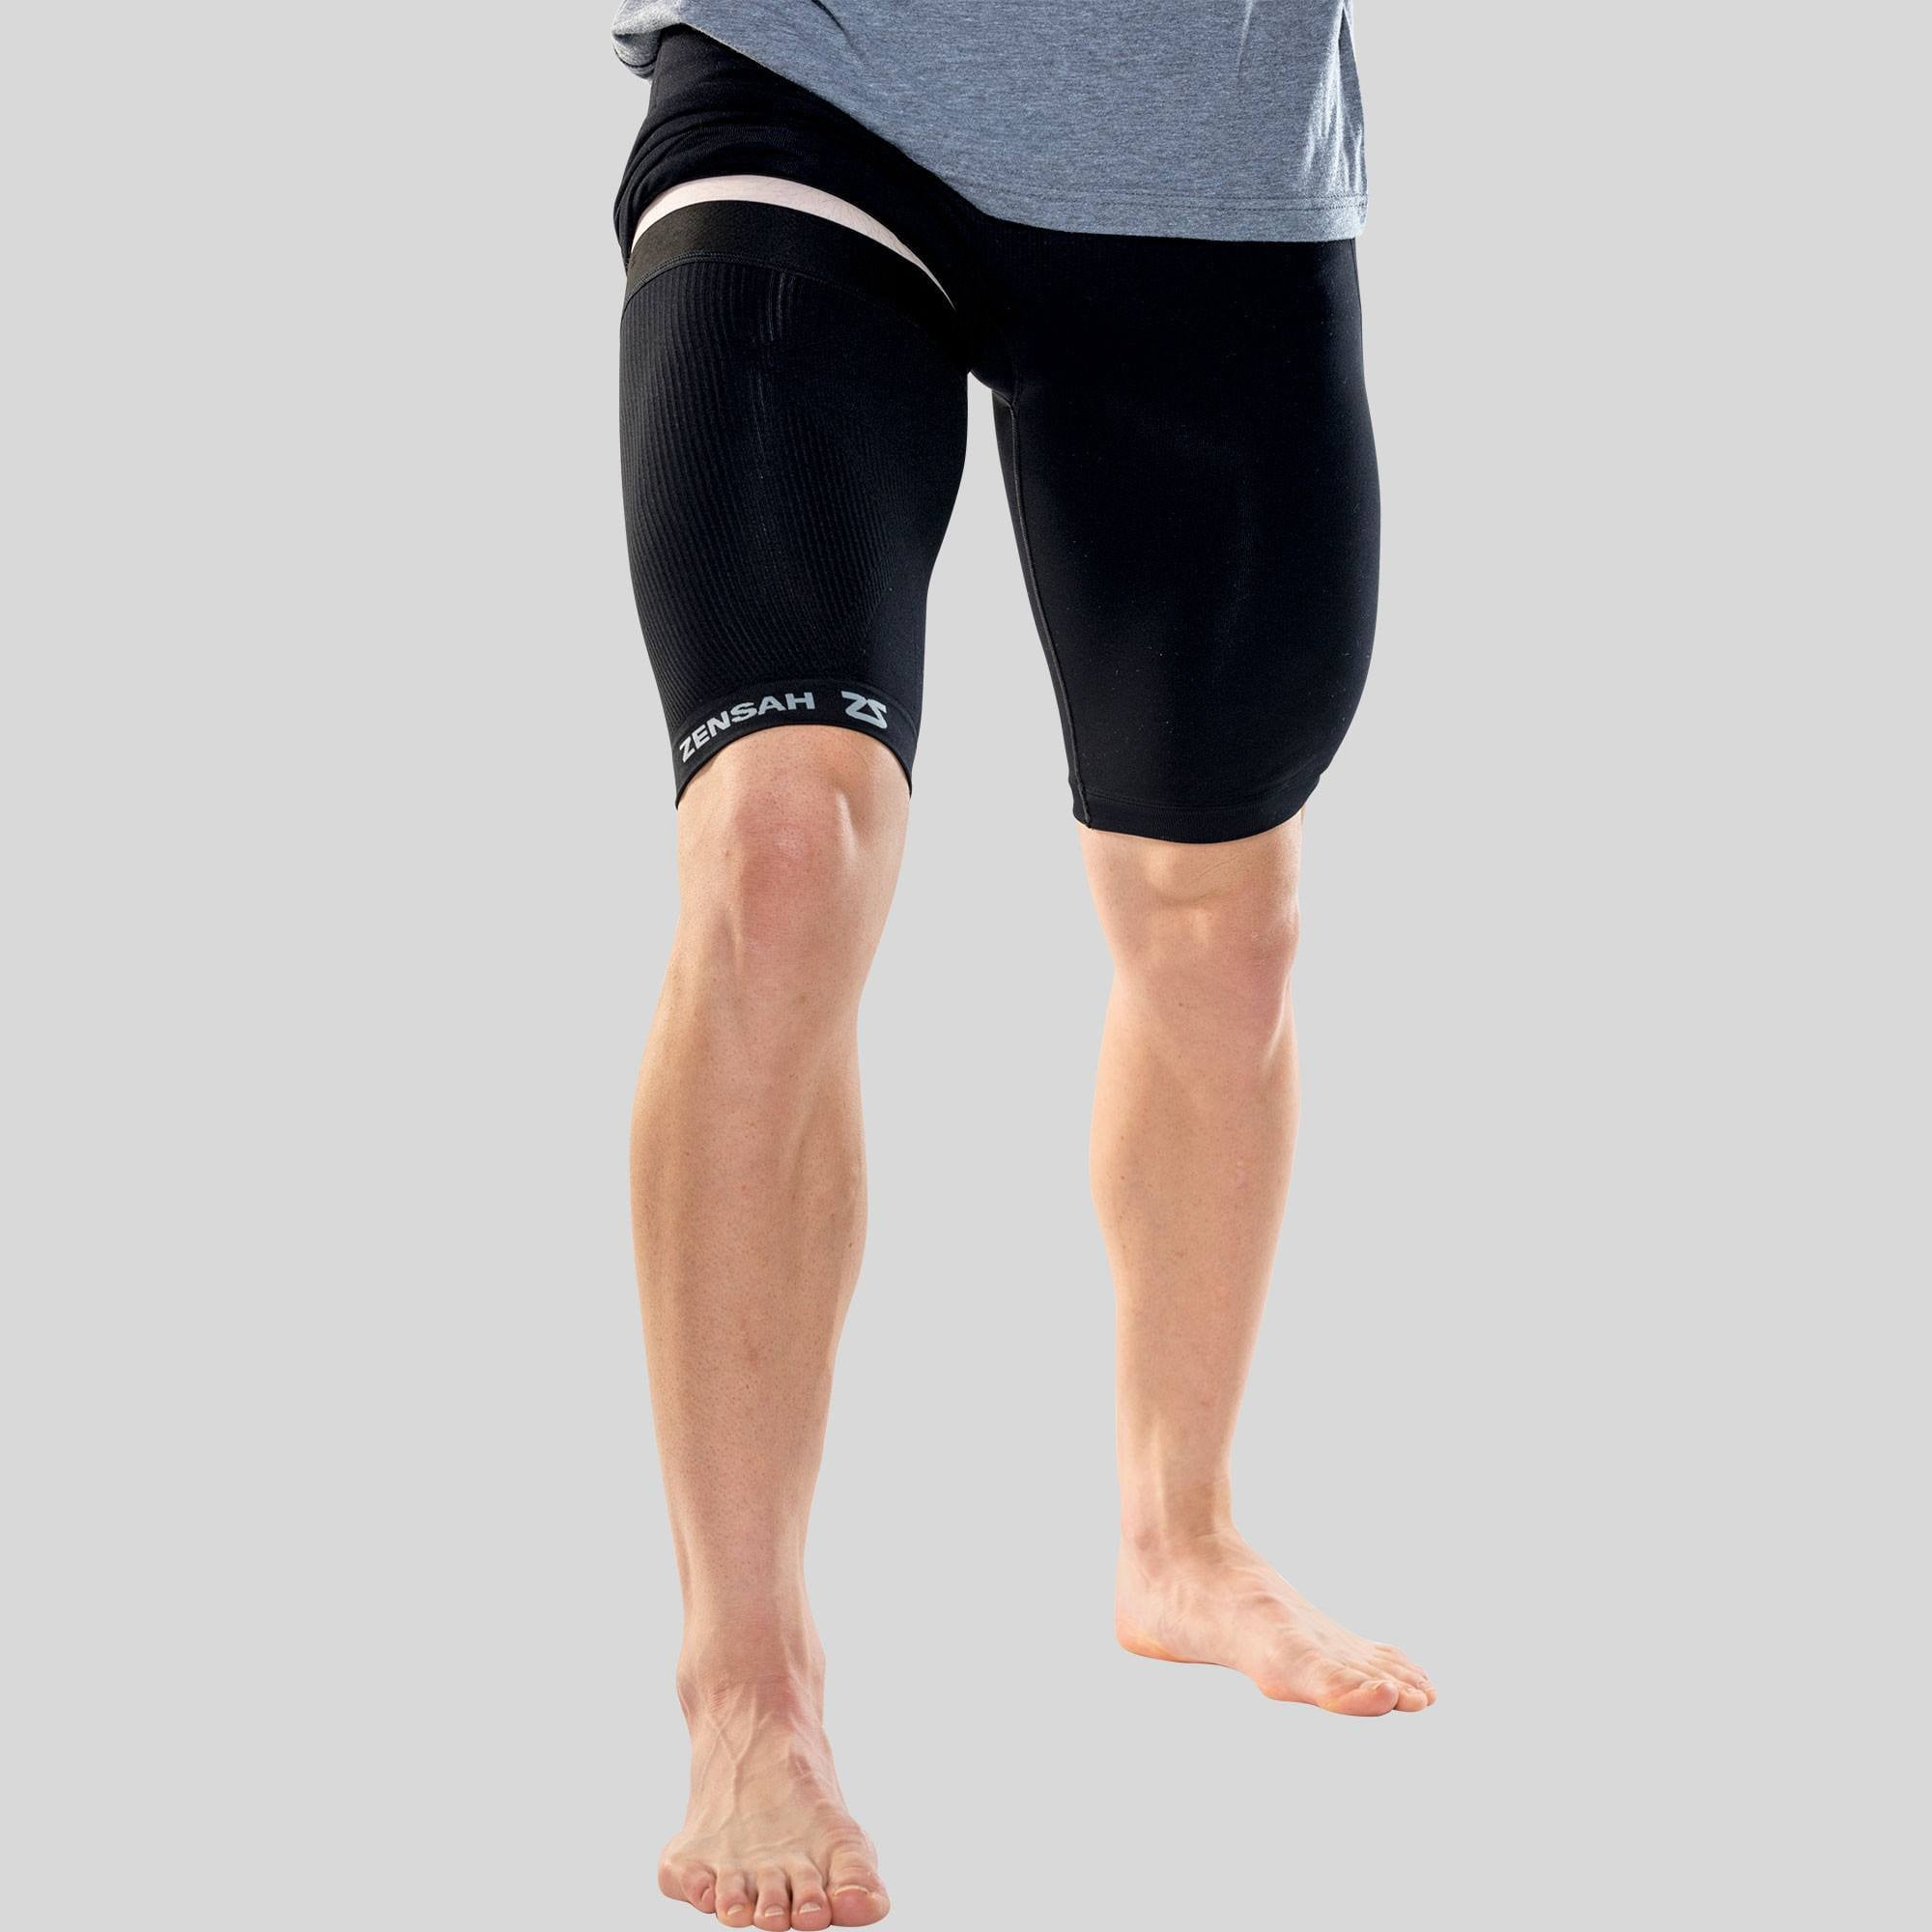 Thigh Compression Sleeve Quad And Hamstring Support Zensah